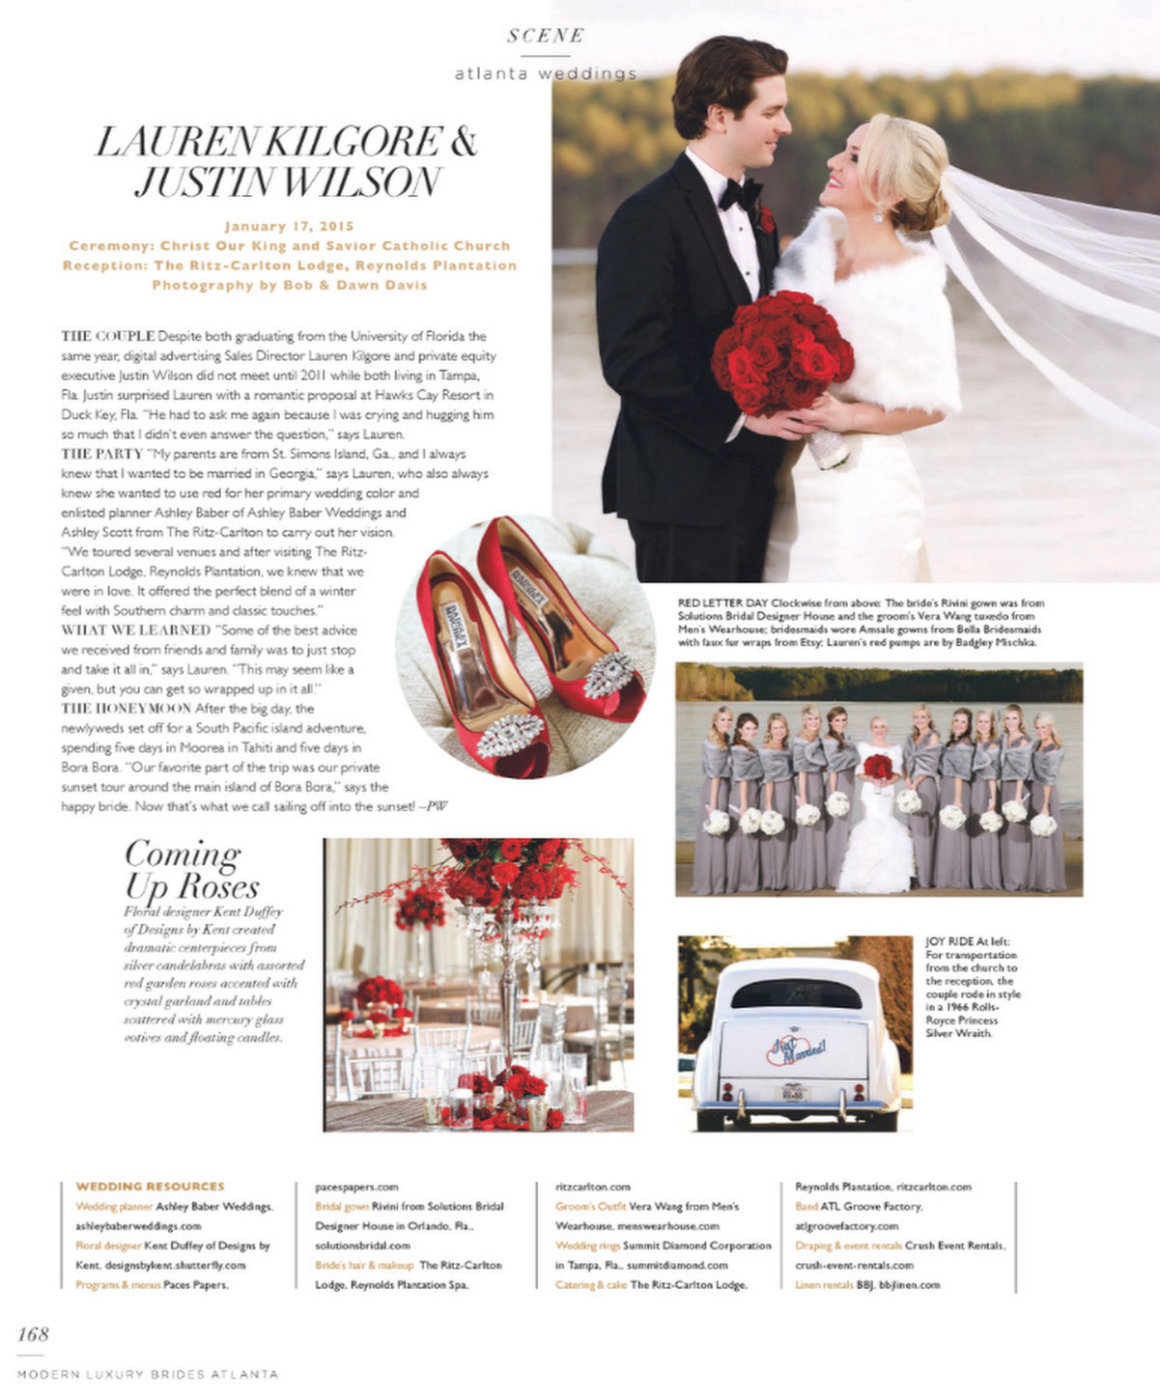 What an honor to see Lauren and Justin's wedding featured in Modern Luxury Brides - Atlanta June 2015 edition. Thank you Phebe Wahl for selecting their beautiful wedding at The Ritz-Carlton Lodge, Reynolds Plantation to be featured... such an incredible honor! Hugs and kisses to all who made this wedding a dream come true for Lauren & Justin!